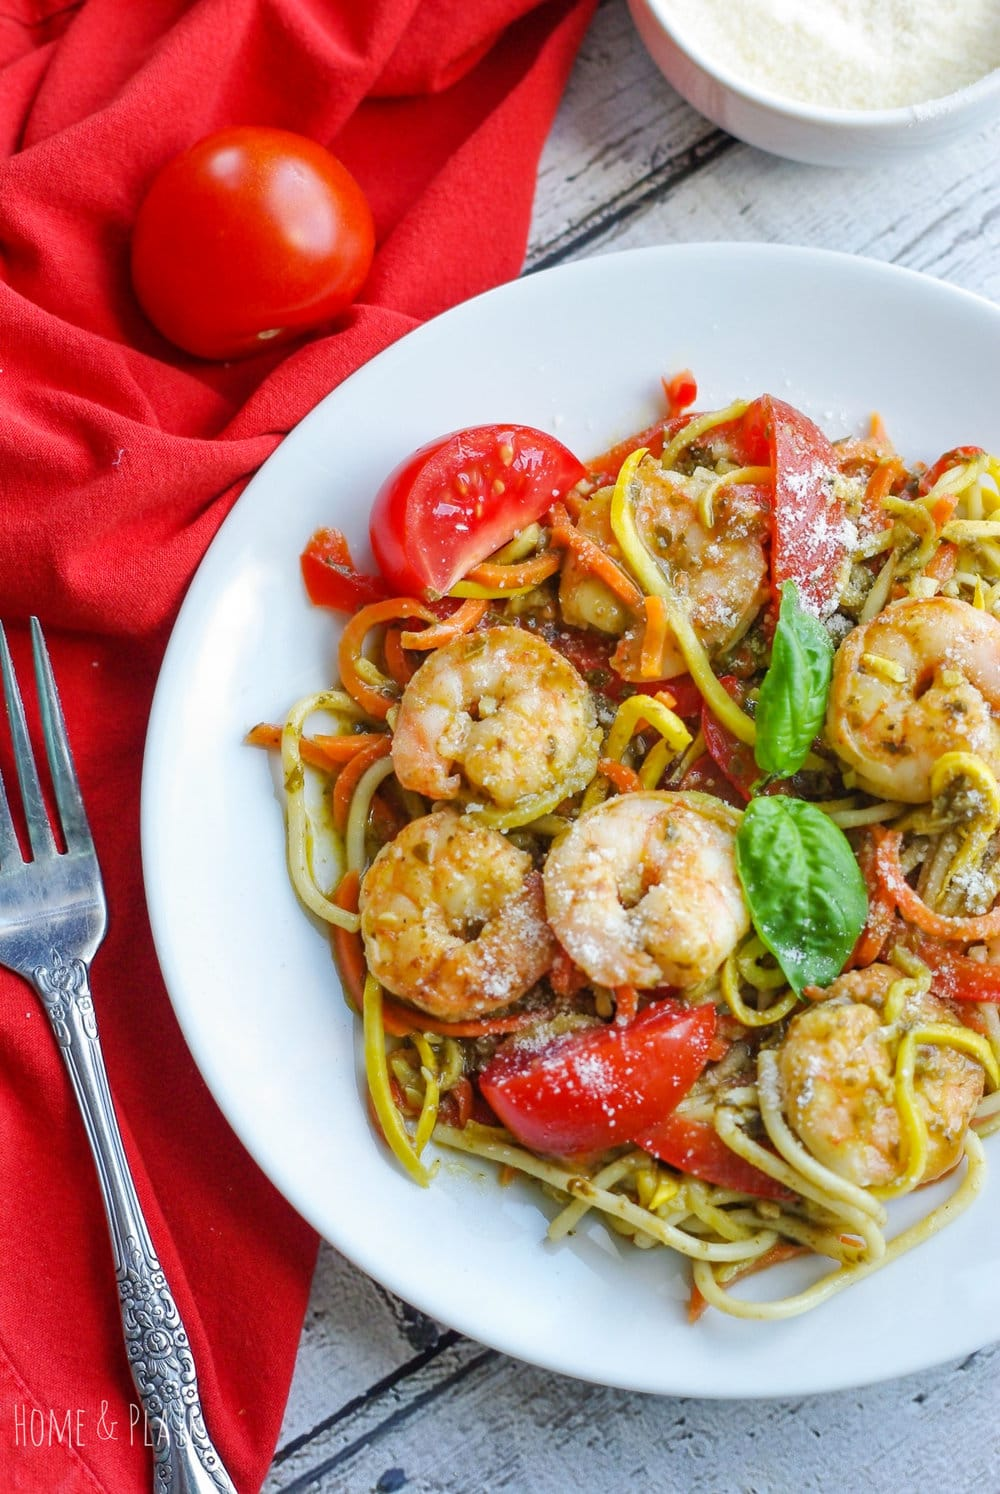 Basil Pesto Vegetable Pasta with Shrimp | www.homeandplate.com | Need a quick dinner? Make a big bowl of pasta filled with fresh vegetables, flavored with basil pesto and sautéed shrimp.